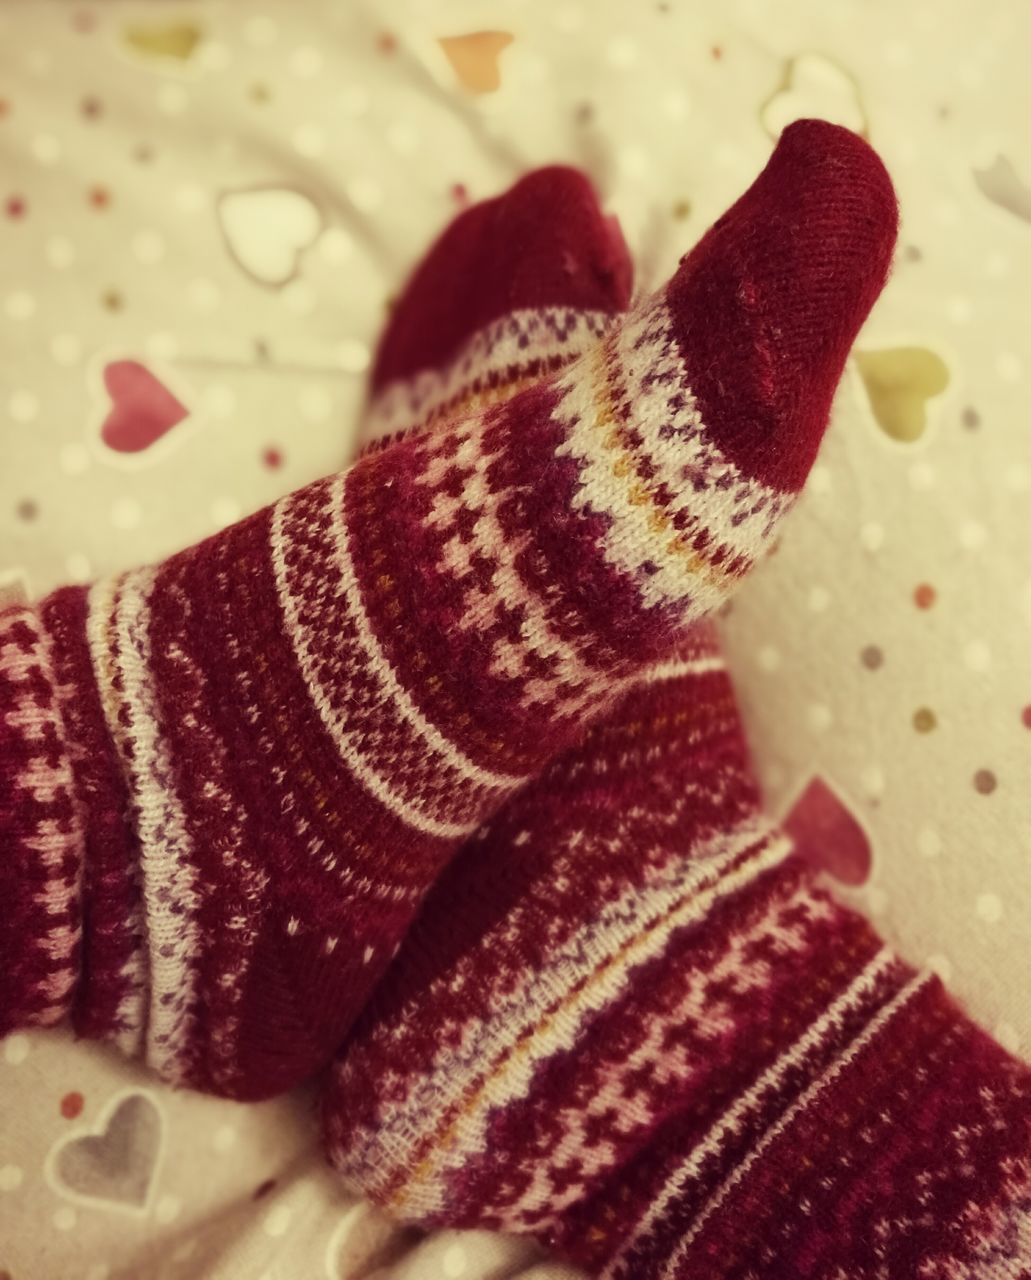 indoors, close-up, wool, woolen, one person, real people, pattern, human leg, low section, human body part, sock, day, people